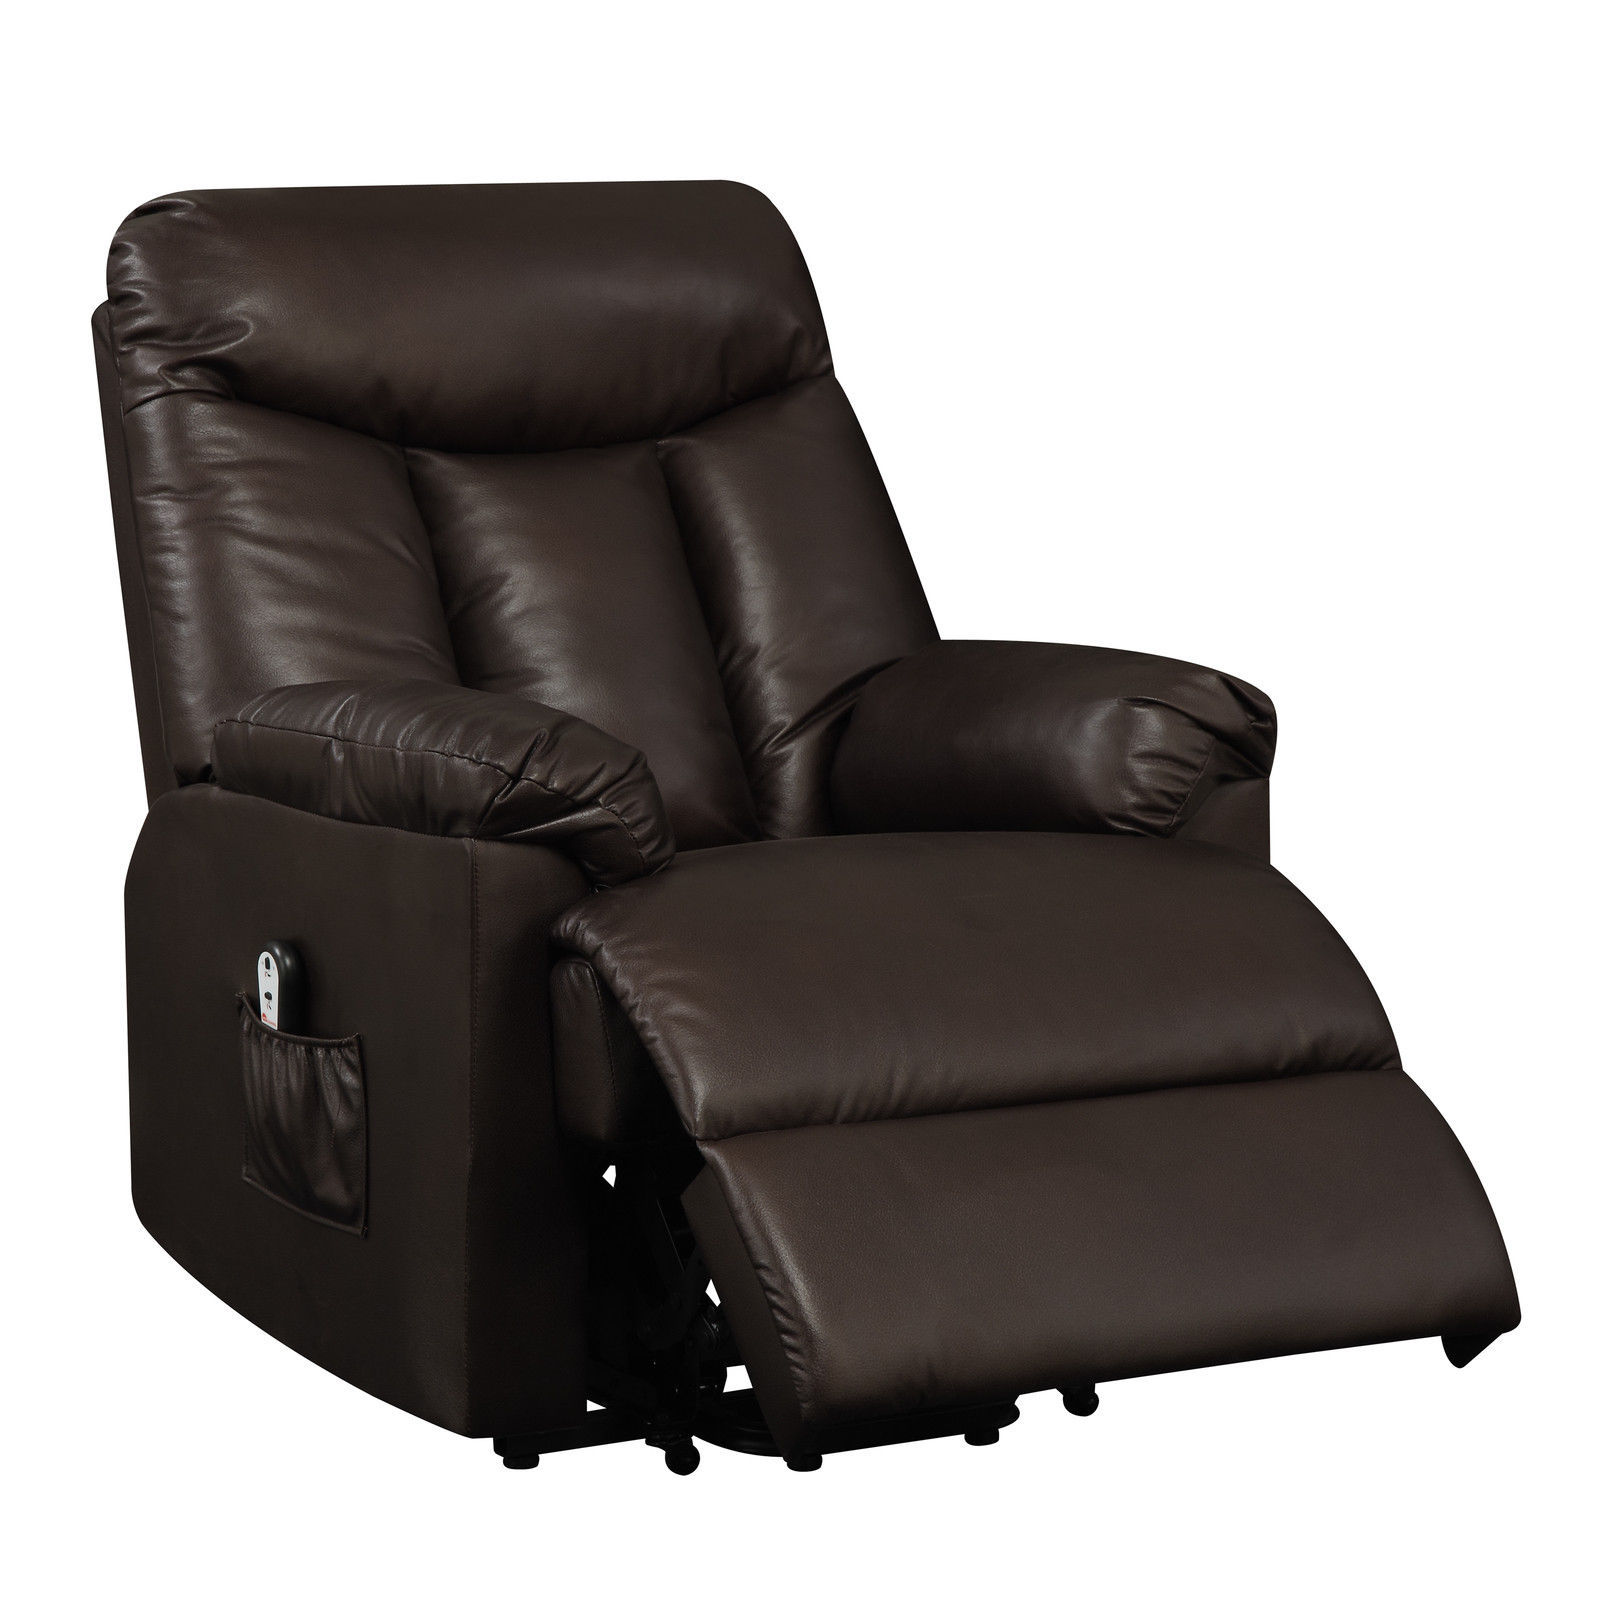 Leather Lift Chairs Electric Lift Chair Recliner Brown Leather Power Motion